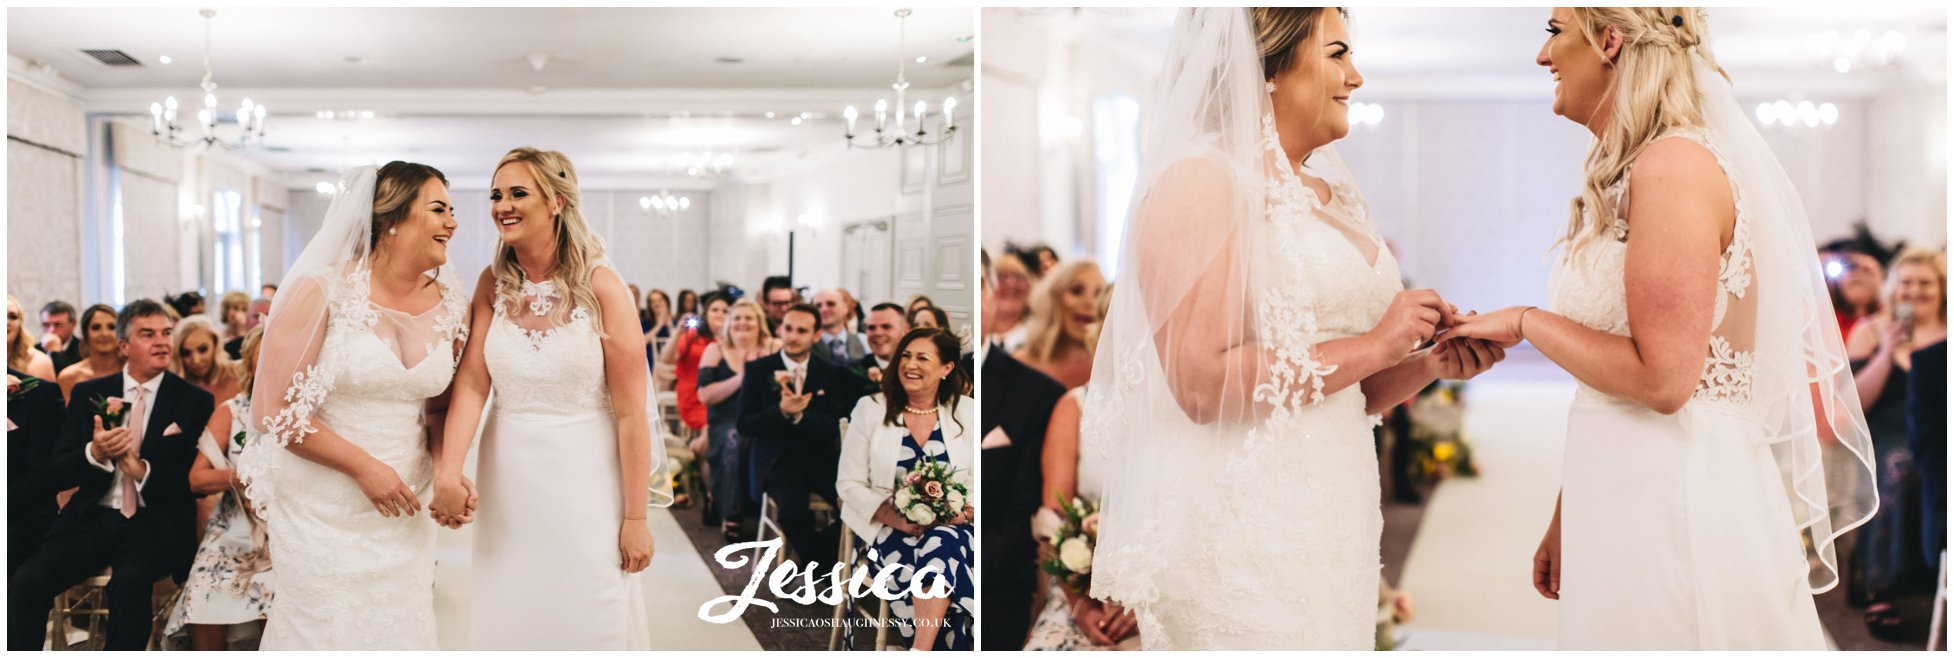 the two brides exchange rings at their mottram hall wedding ceremony